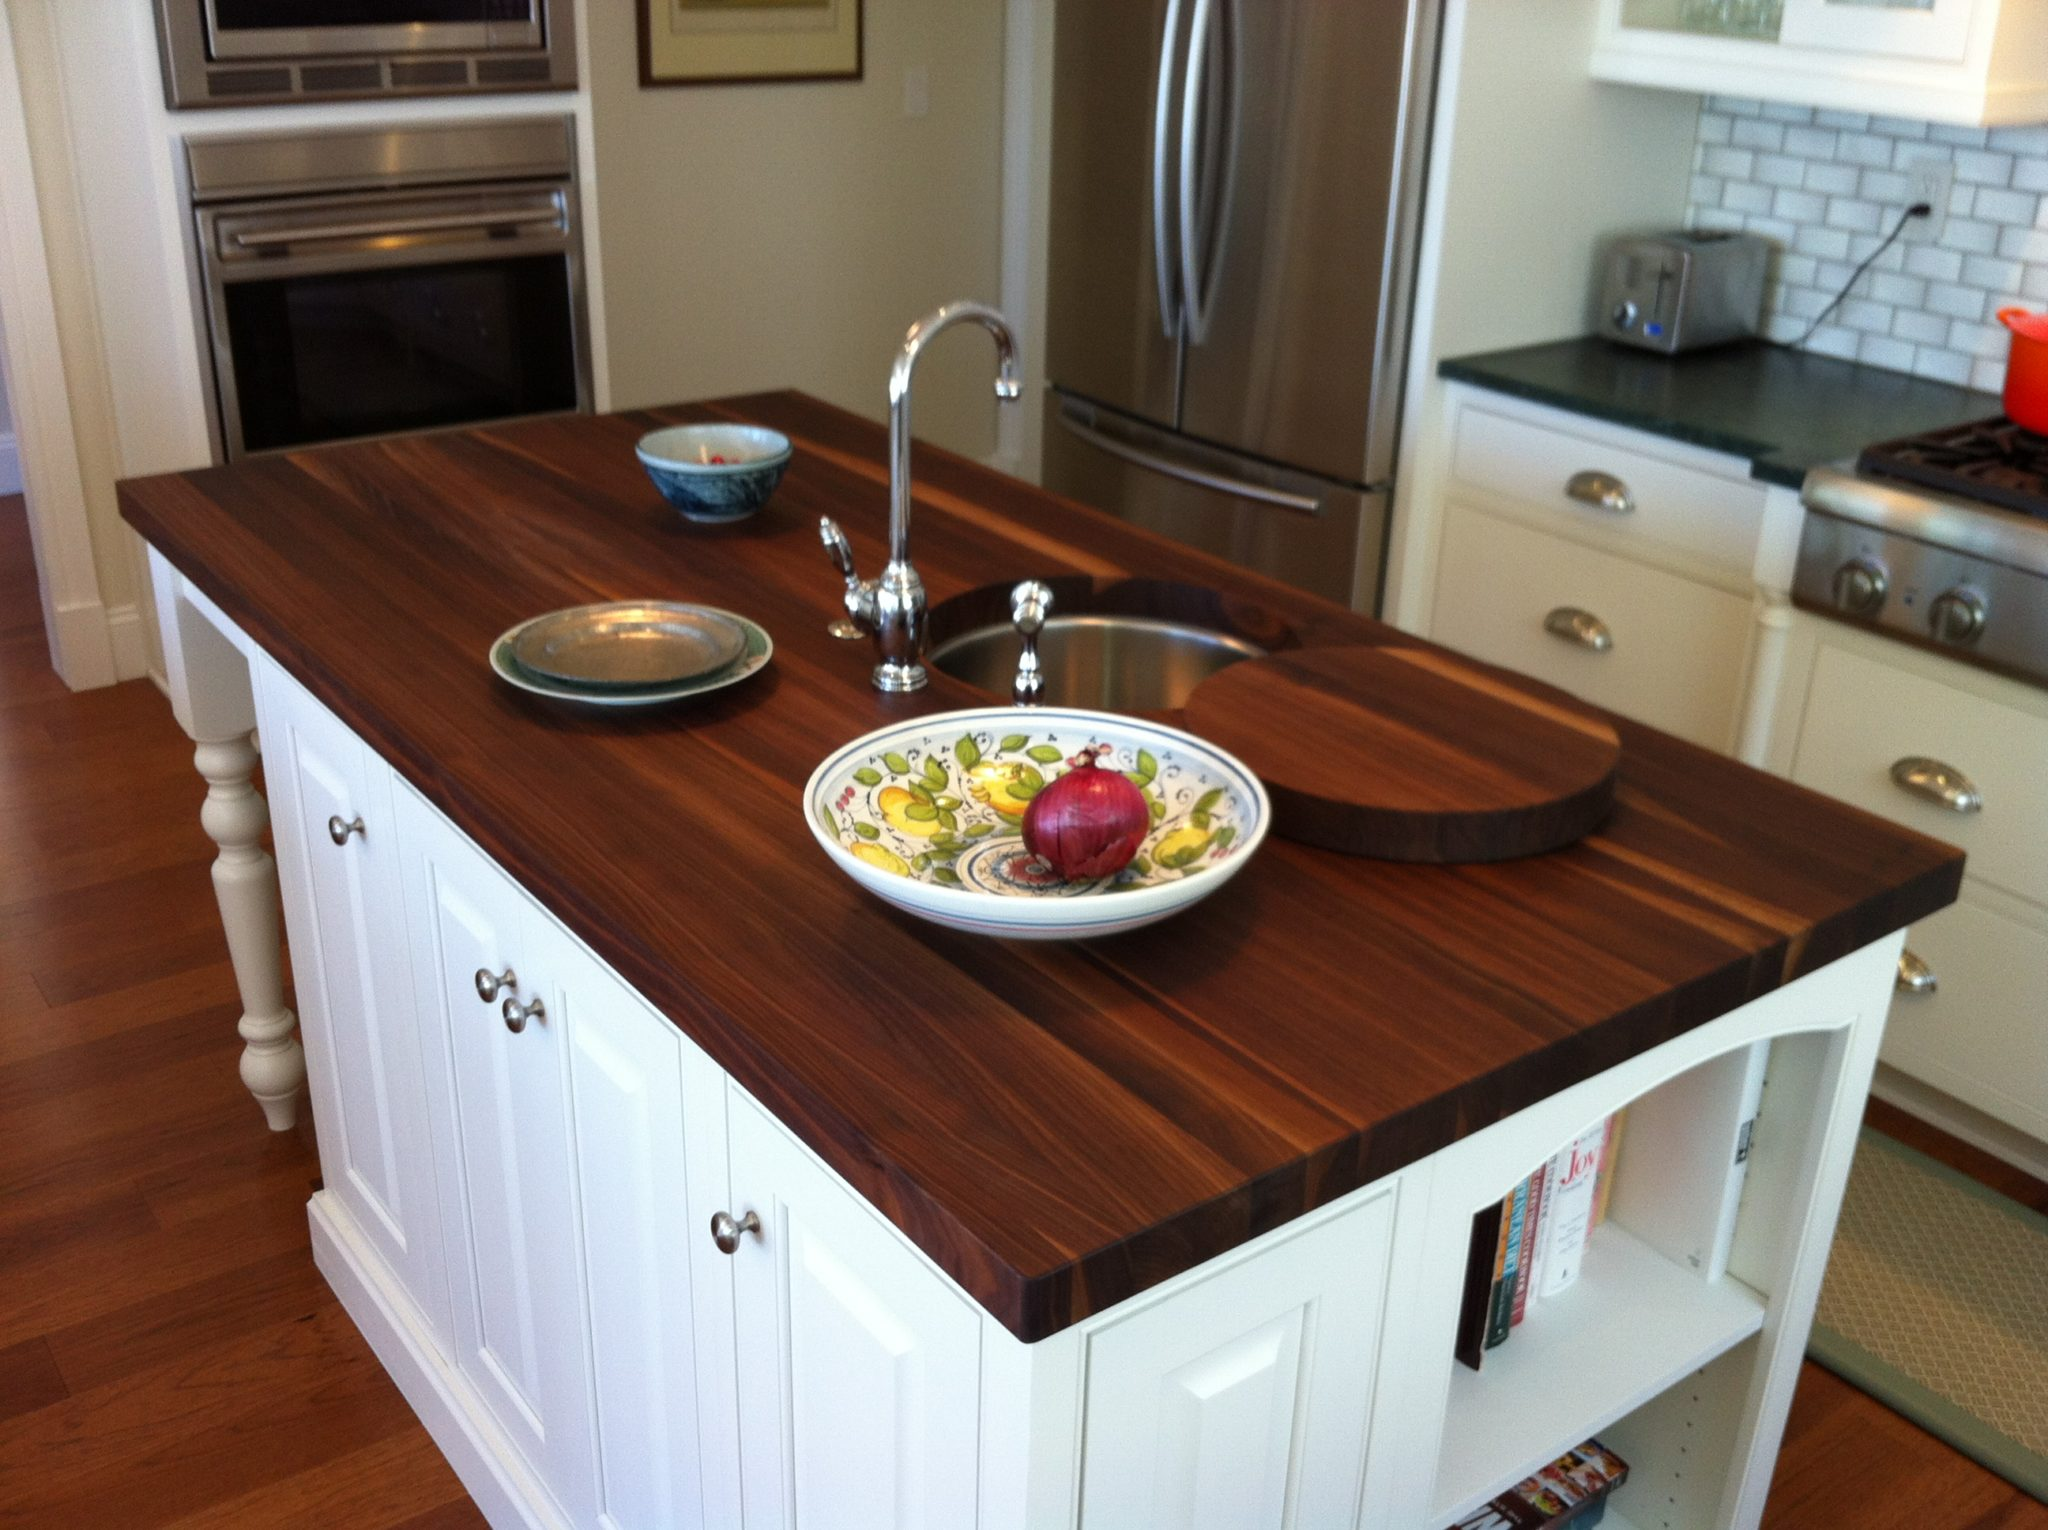 Charming and classy wooden kitchen countertops for Stainless steel countertops cost per sq ft